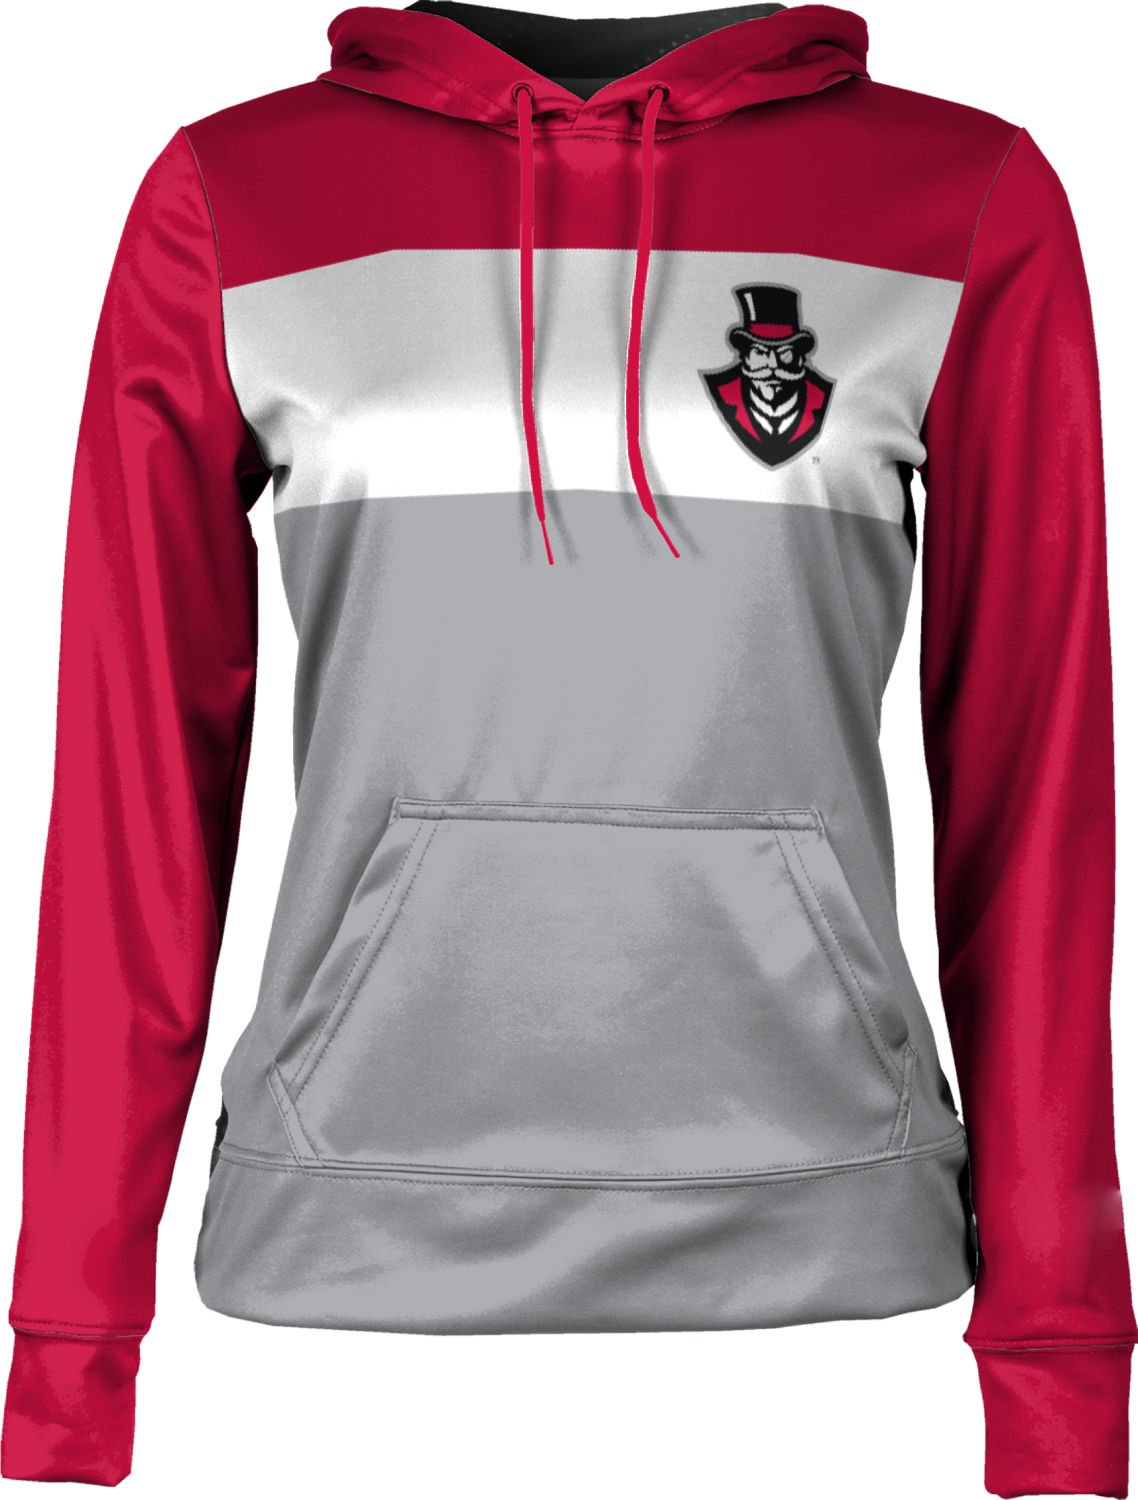 ProSphere Austin Peay State University Girls' Pullover Hoodie - Prime FD371 by ProSphere (Image #4)